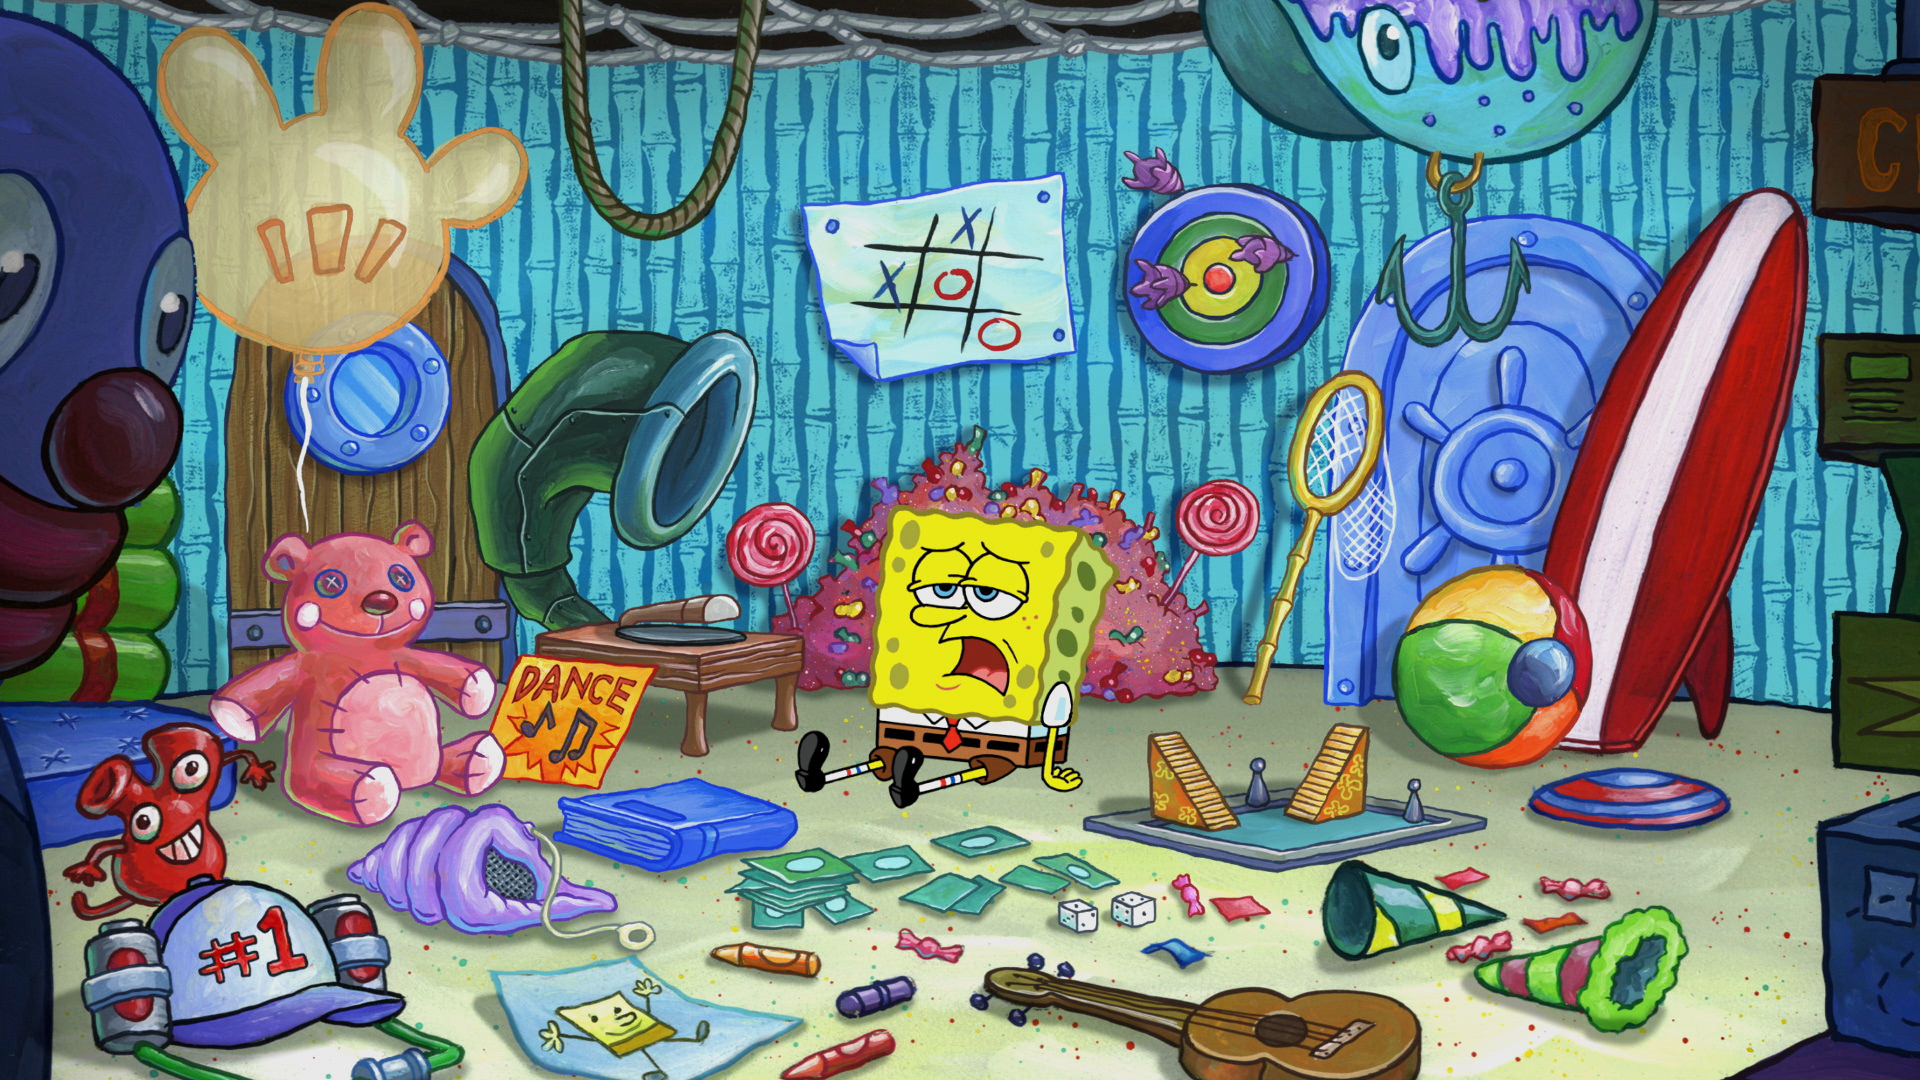 Watch Spongebob Squarepants Season 10 Episode 4 Spongebob S Place Plankton Gets The Boot Full Show On Cbs All Access